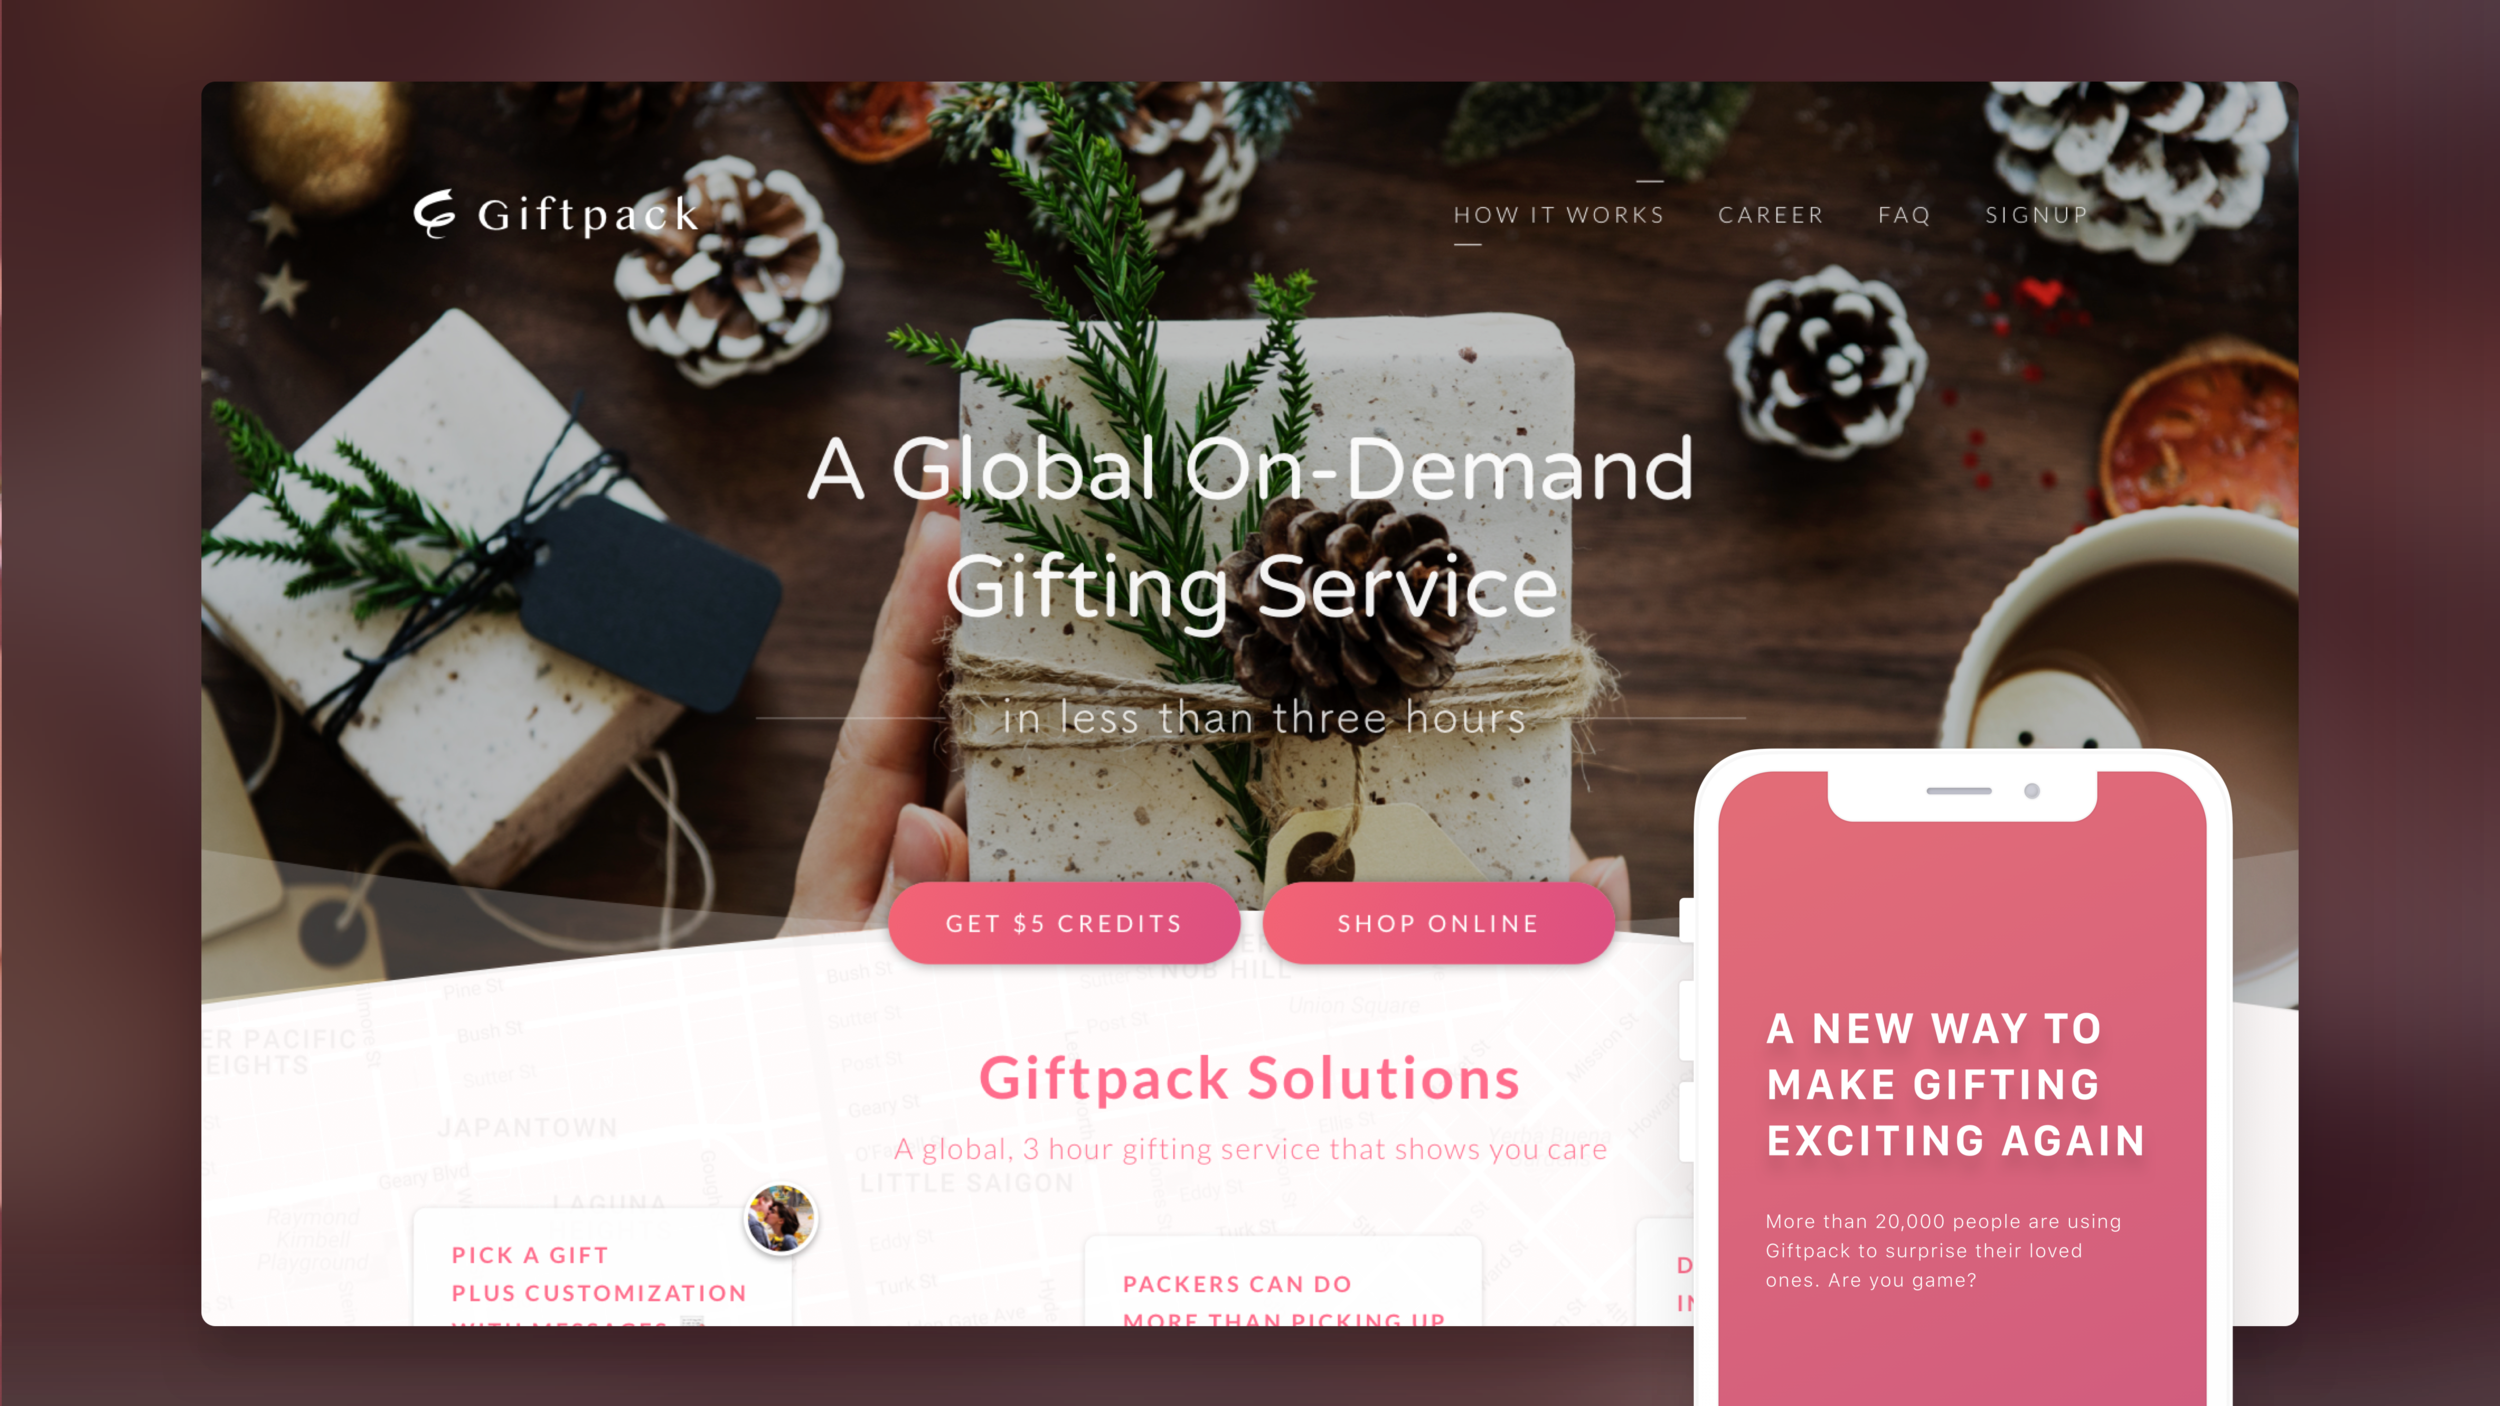 Giftpack-startup-product-image.png